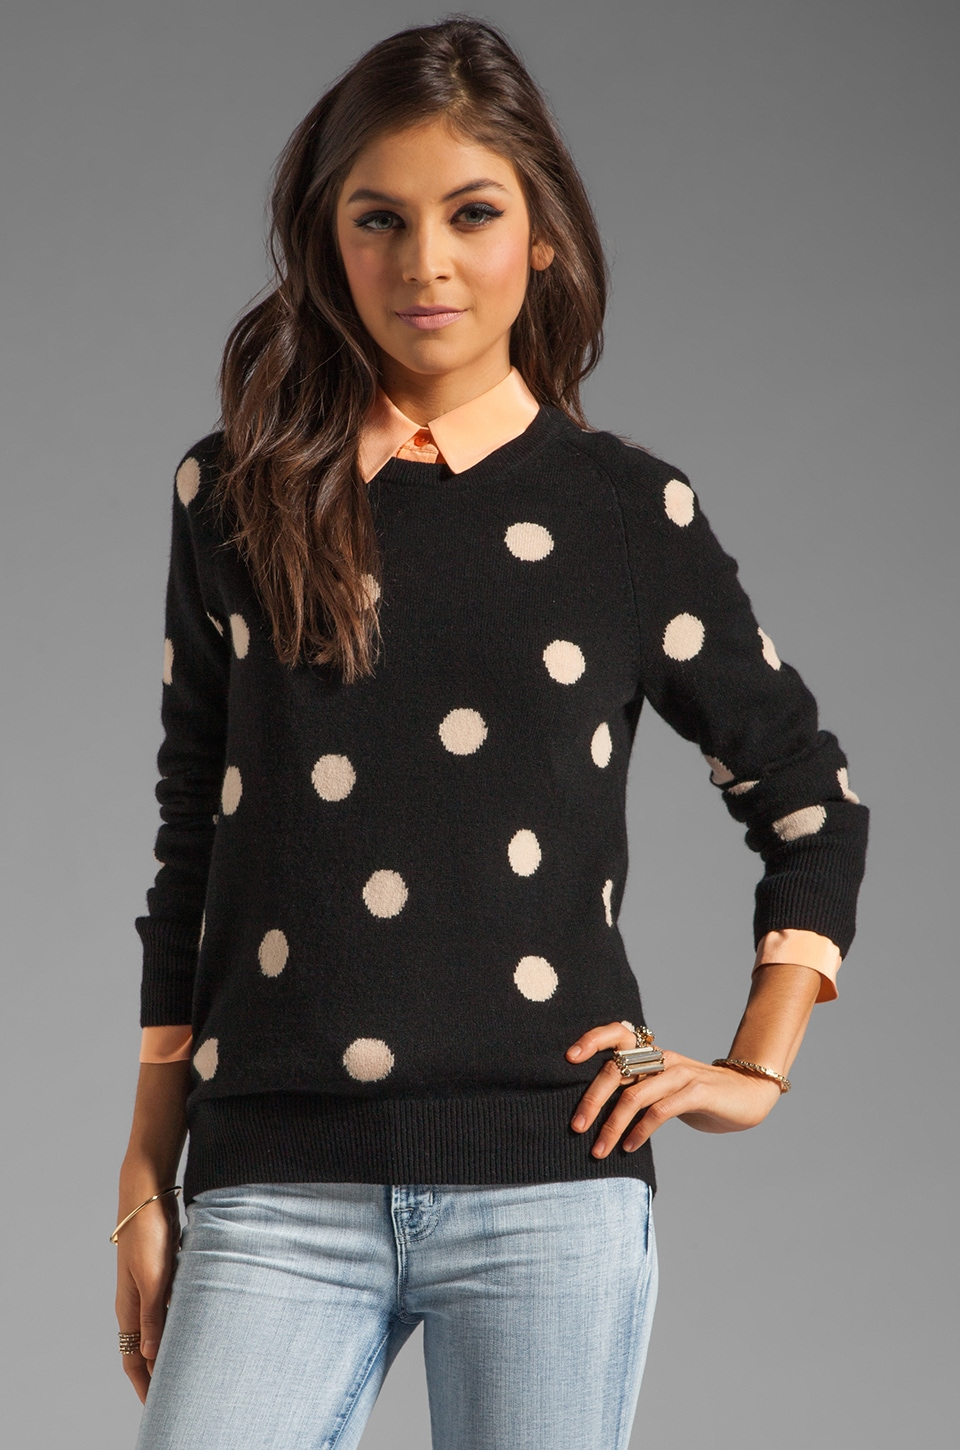 Equipment Sloane Classic Dots Crew Neck Sweater in Black